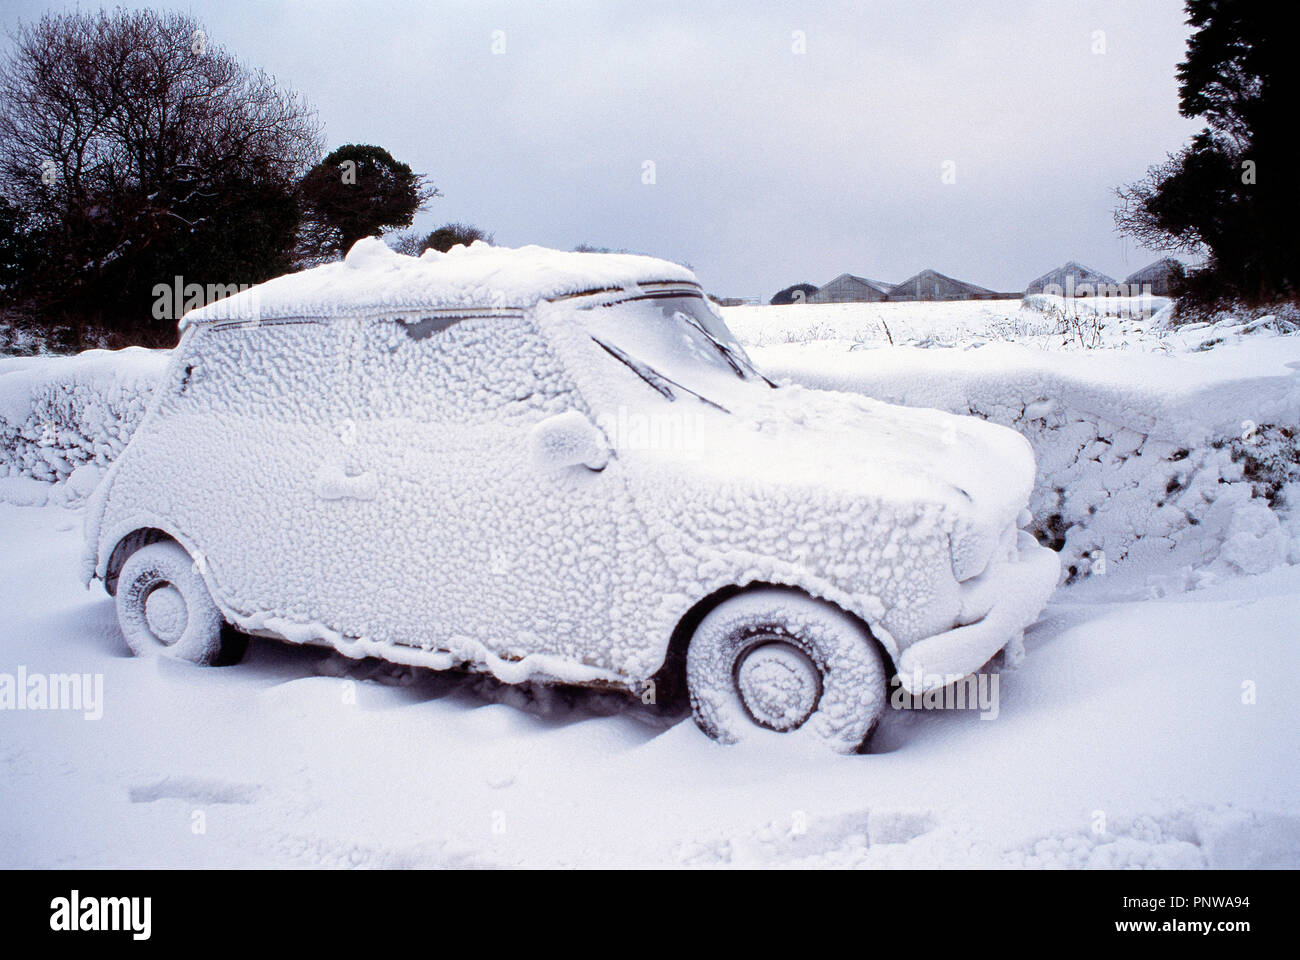 Winter scene with mini car covered in snow. Channel Islands. Guernsey. - Stock Image